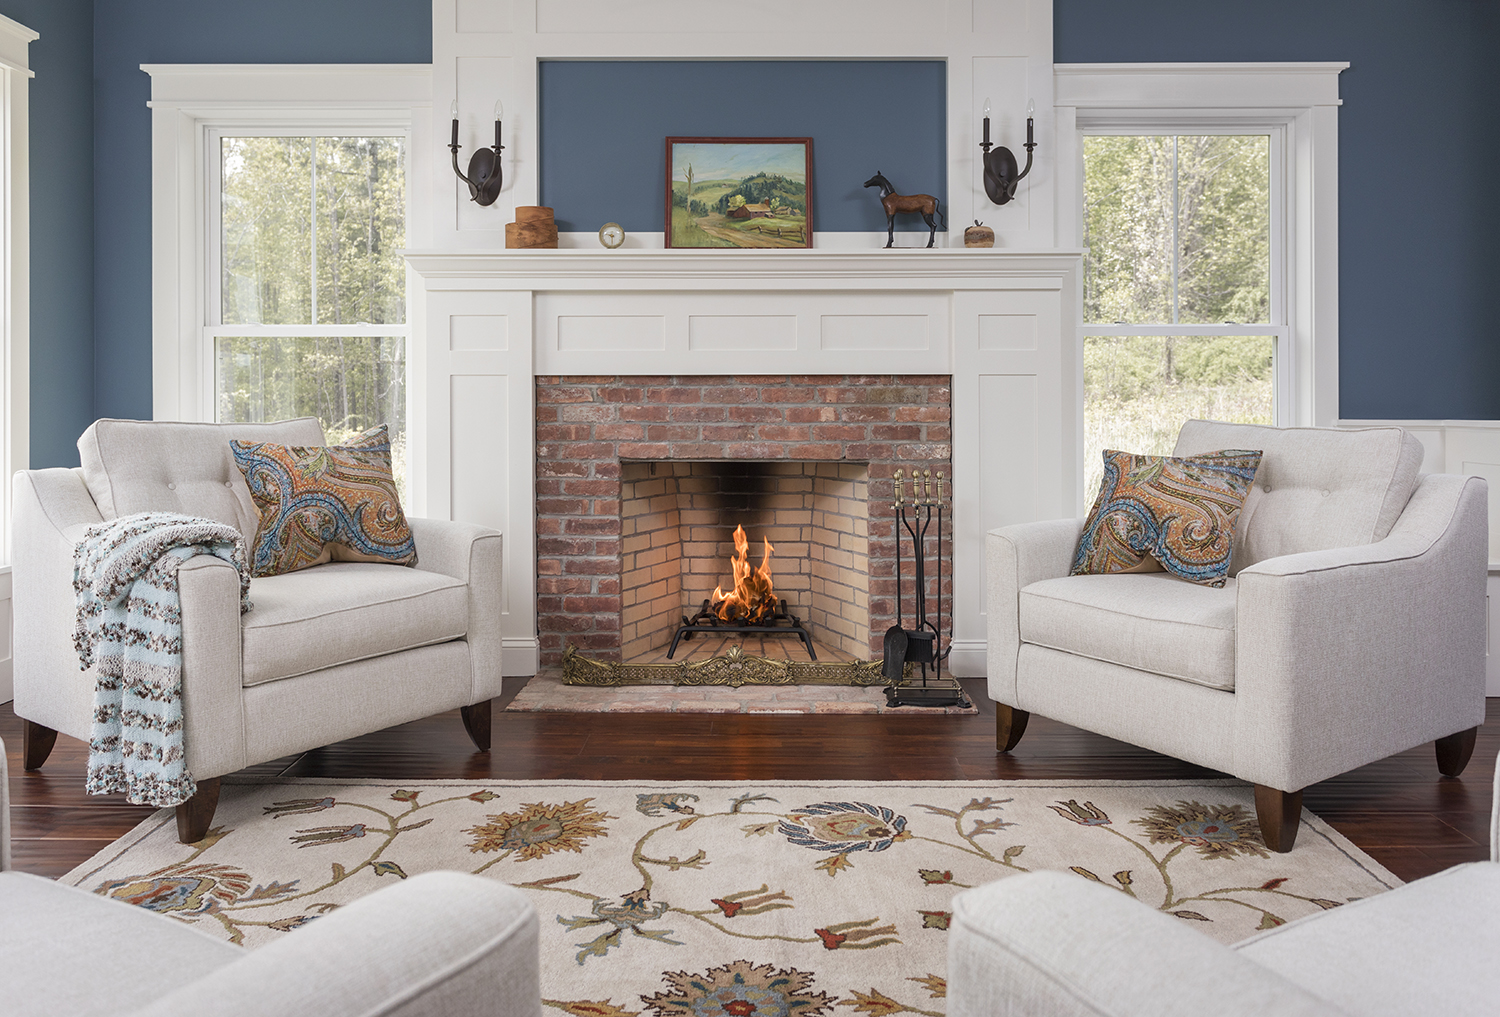 New Hampshire Barn House Fireplace Sitting.jpg